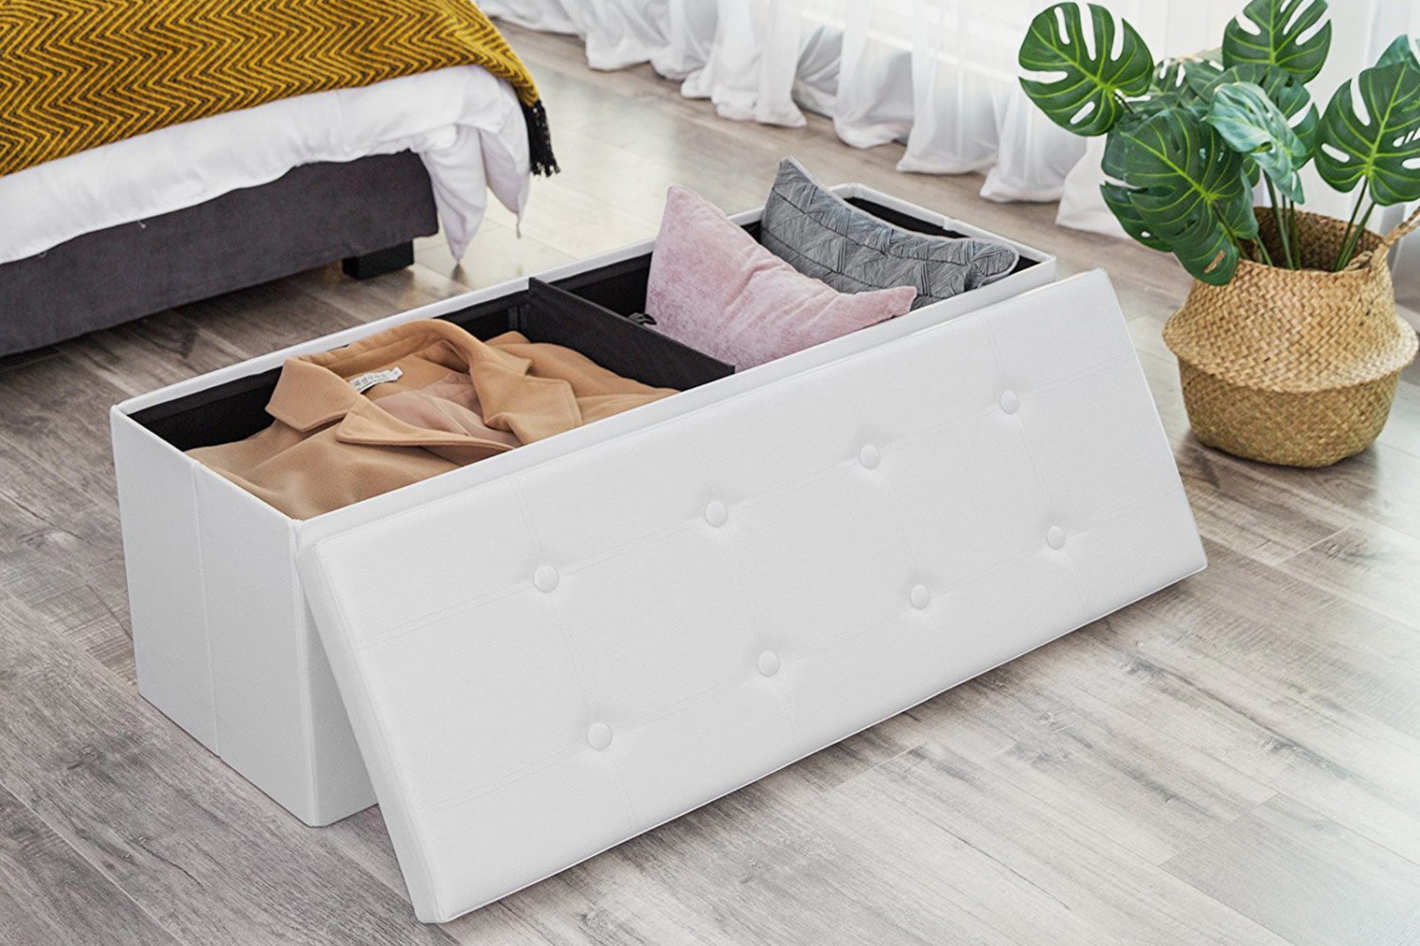 storage bench living room best sofa for the 15 benches 2018 songmics 43 faux leather folding ottoman